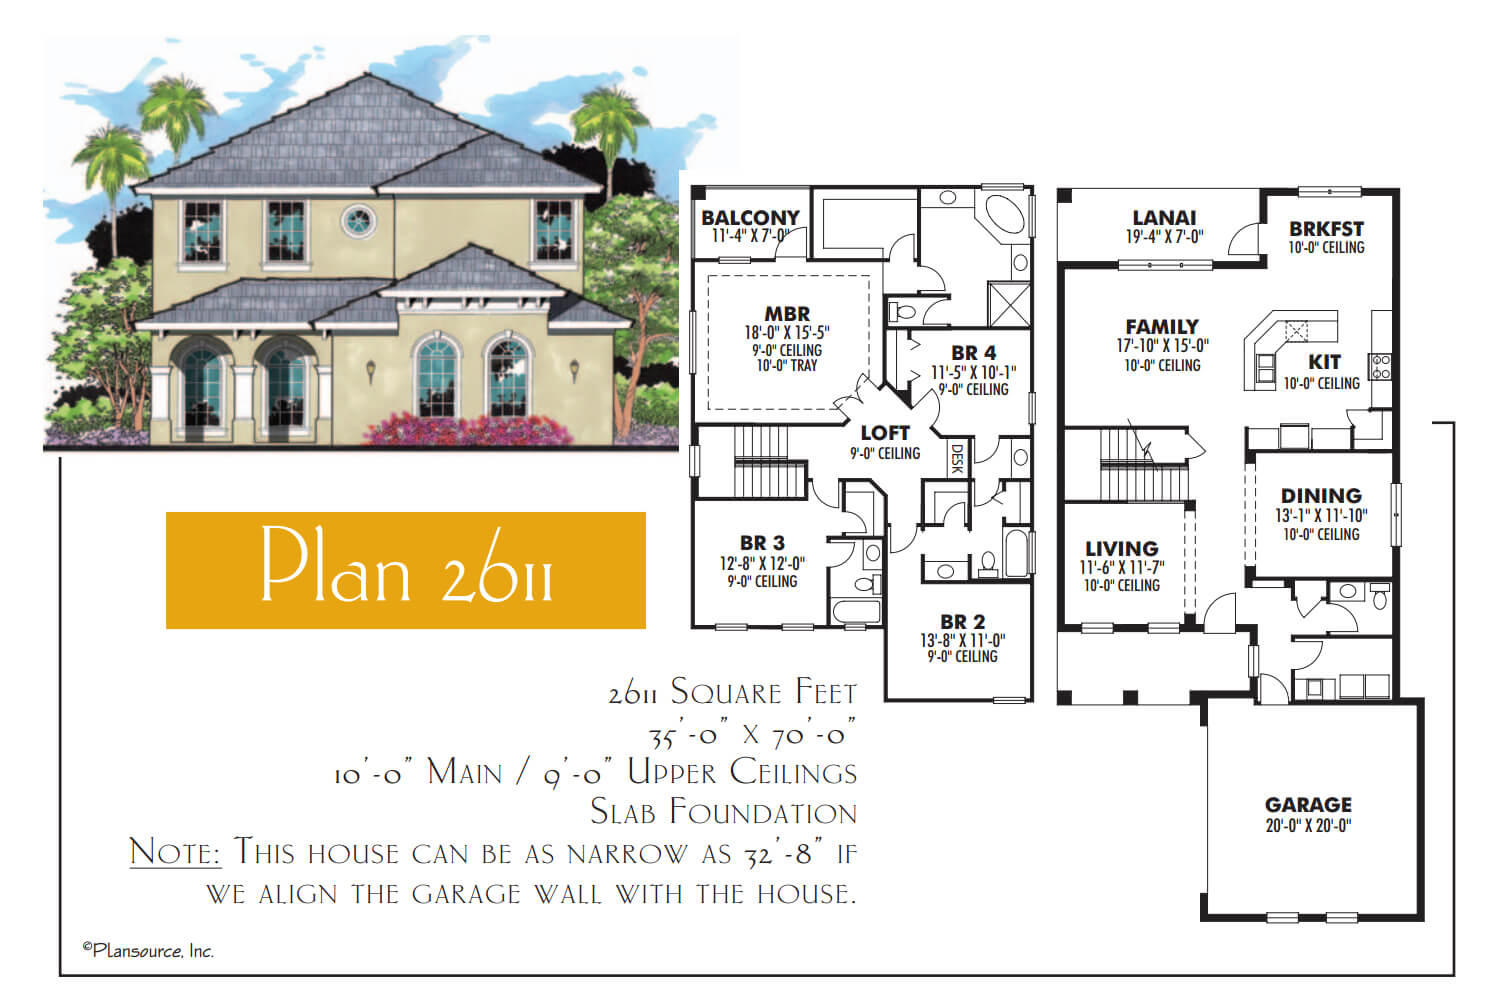 Floor Plans,2,501 SQ FT TO 3,000 SQ FT,1061